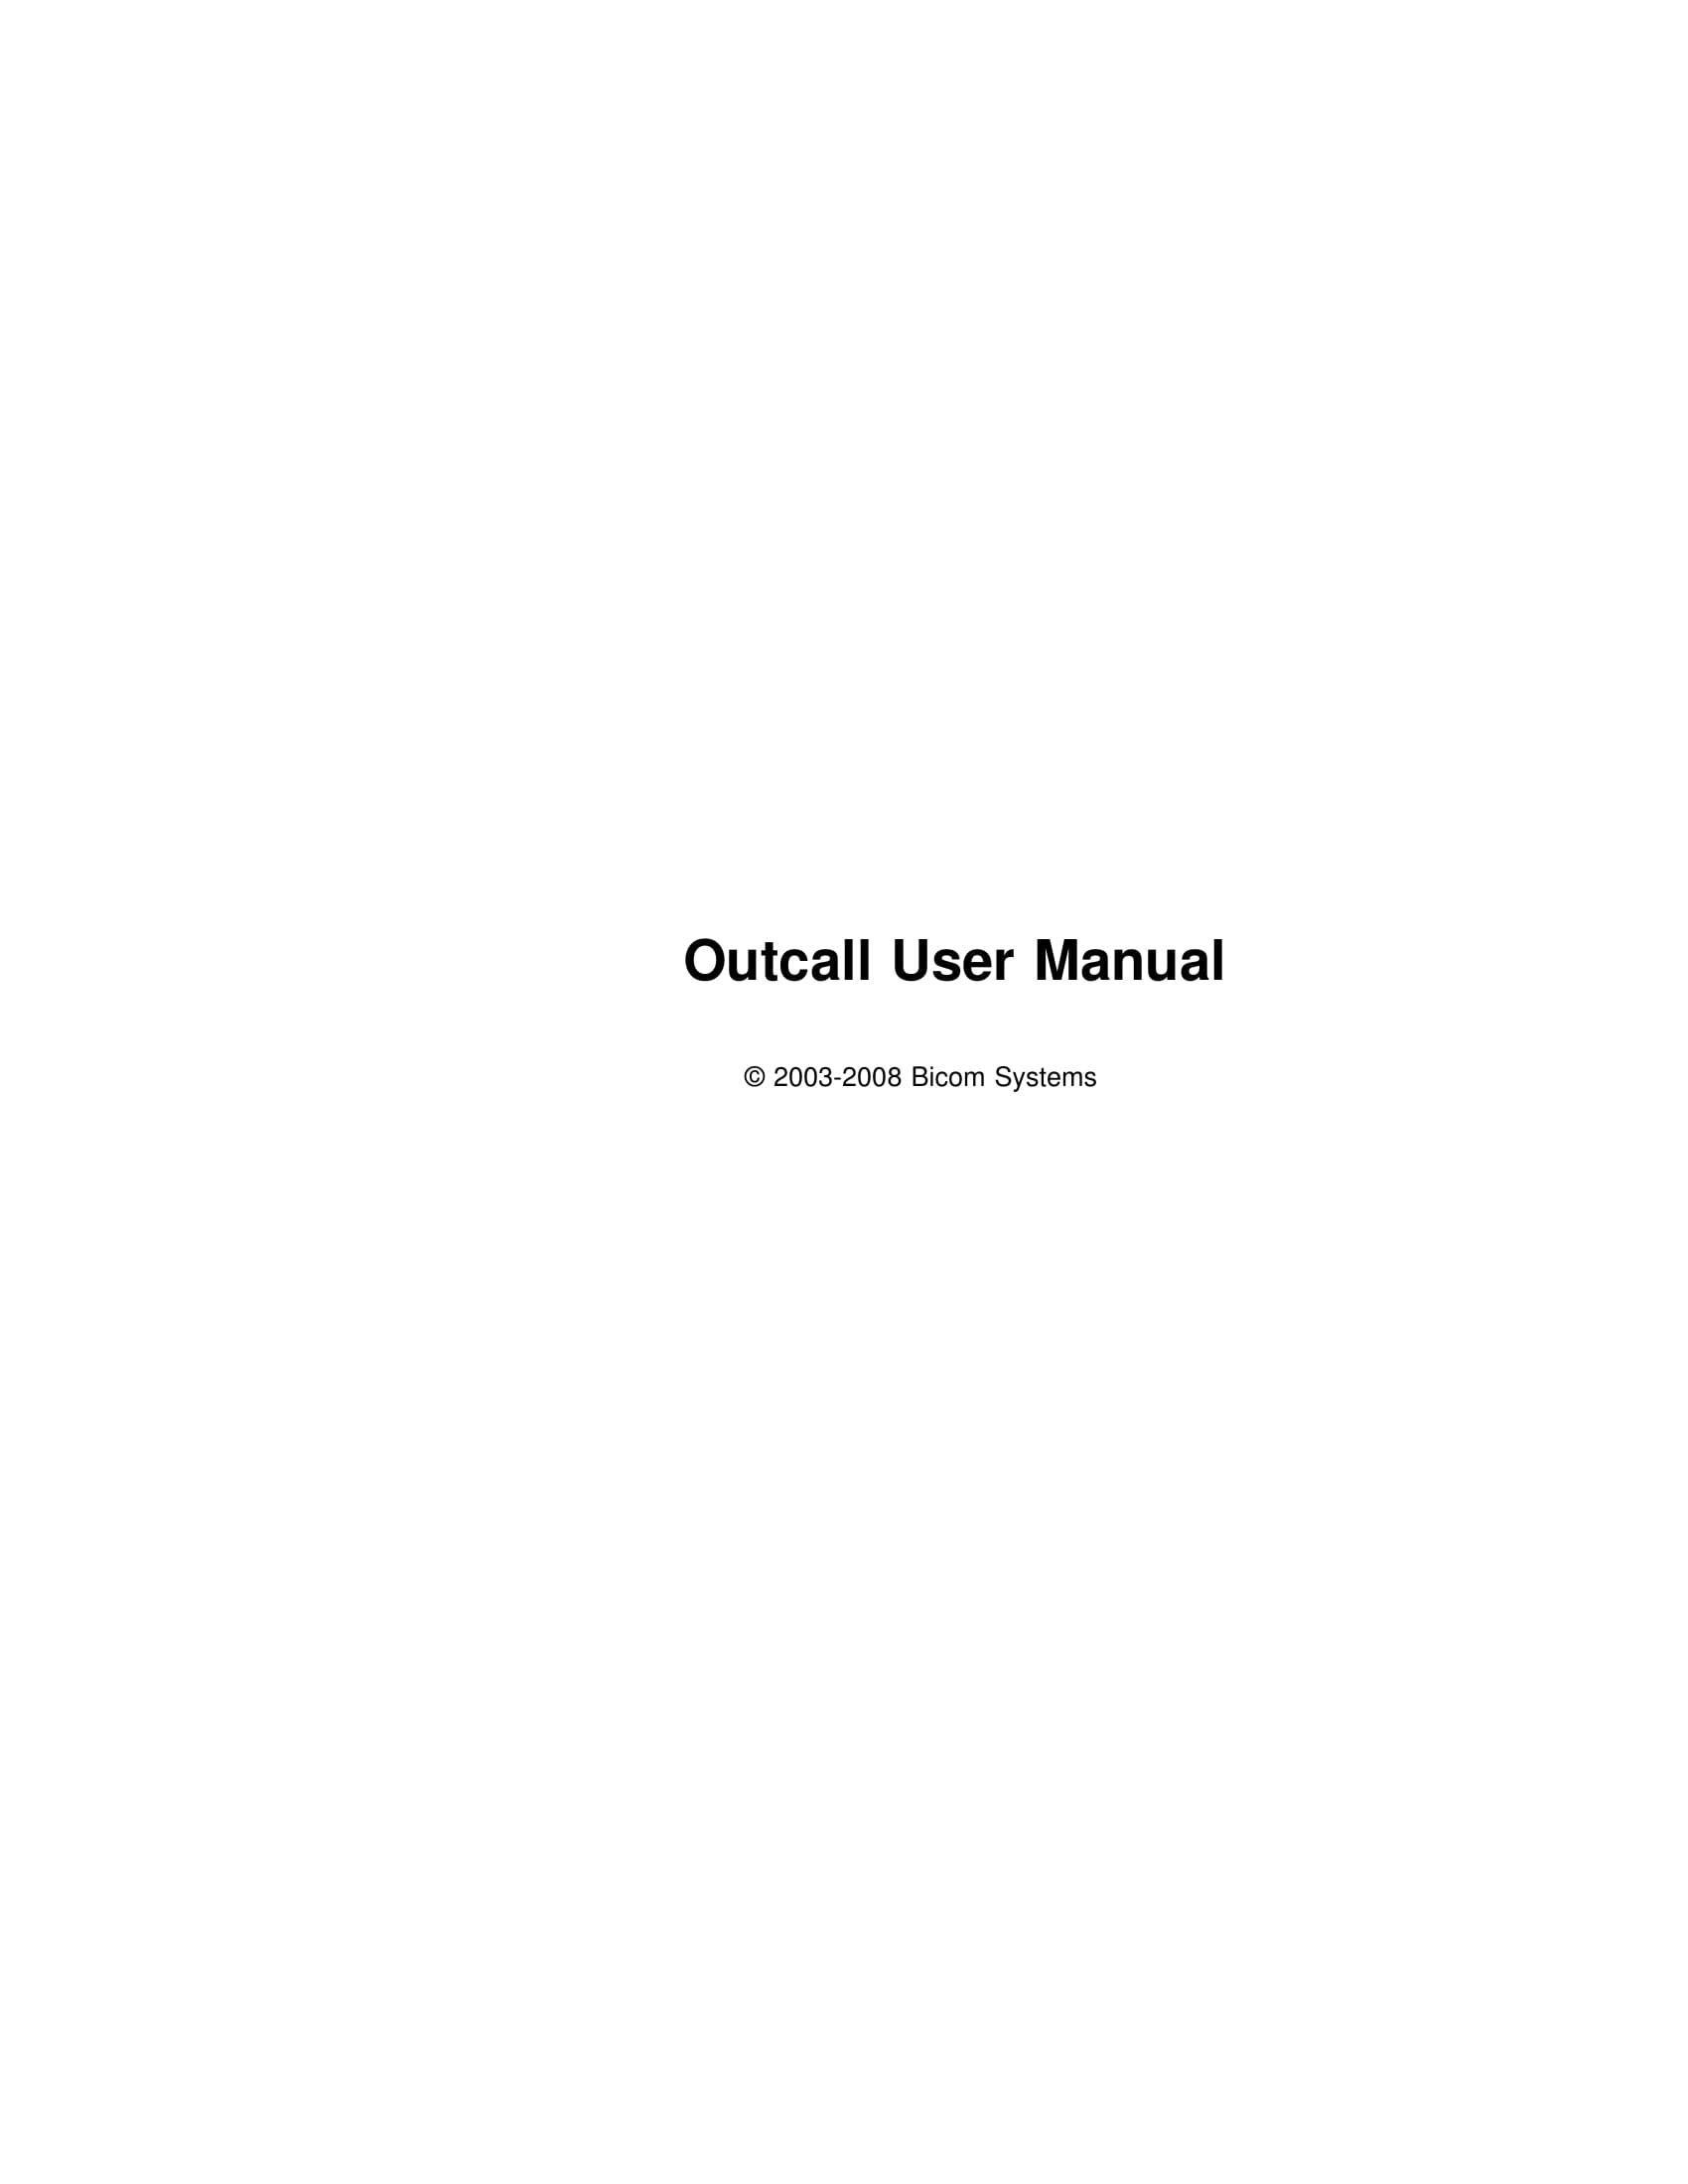 outcall user manual with call log specification example 01